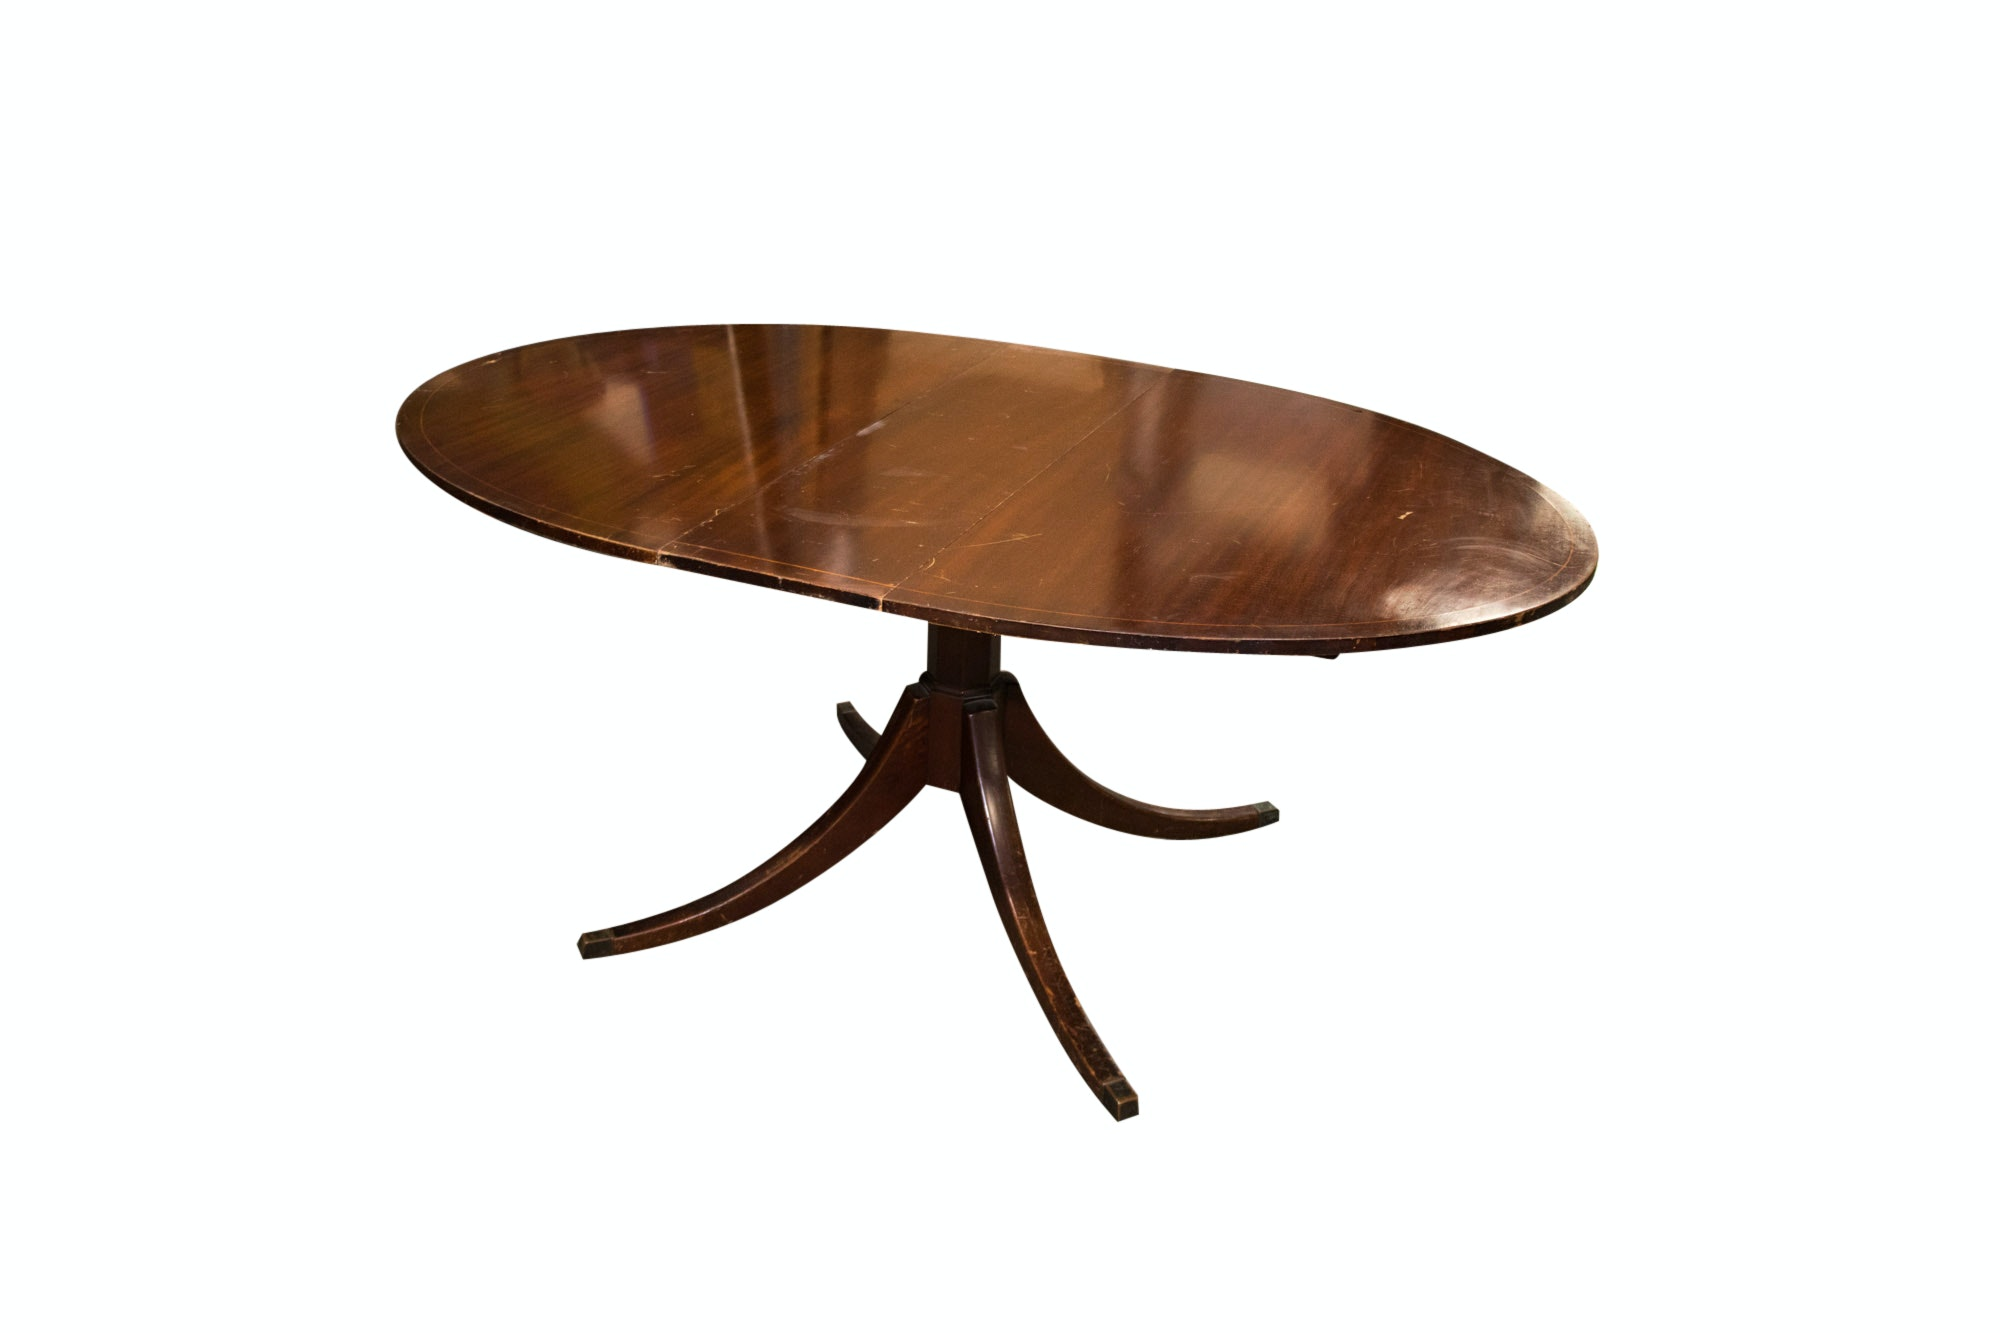 Federal Style Mahogany and String-Inlaid Dining Table, 20th Century